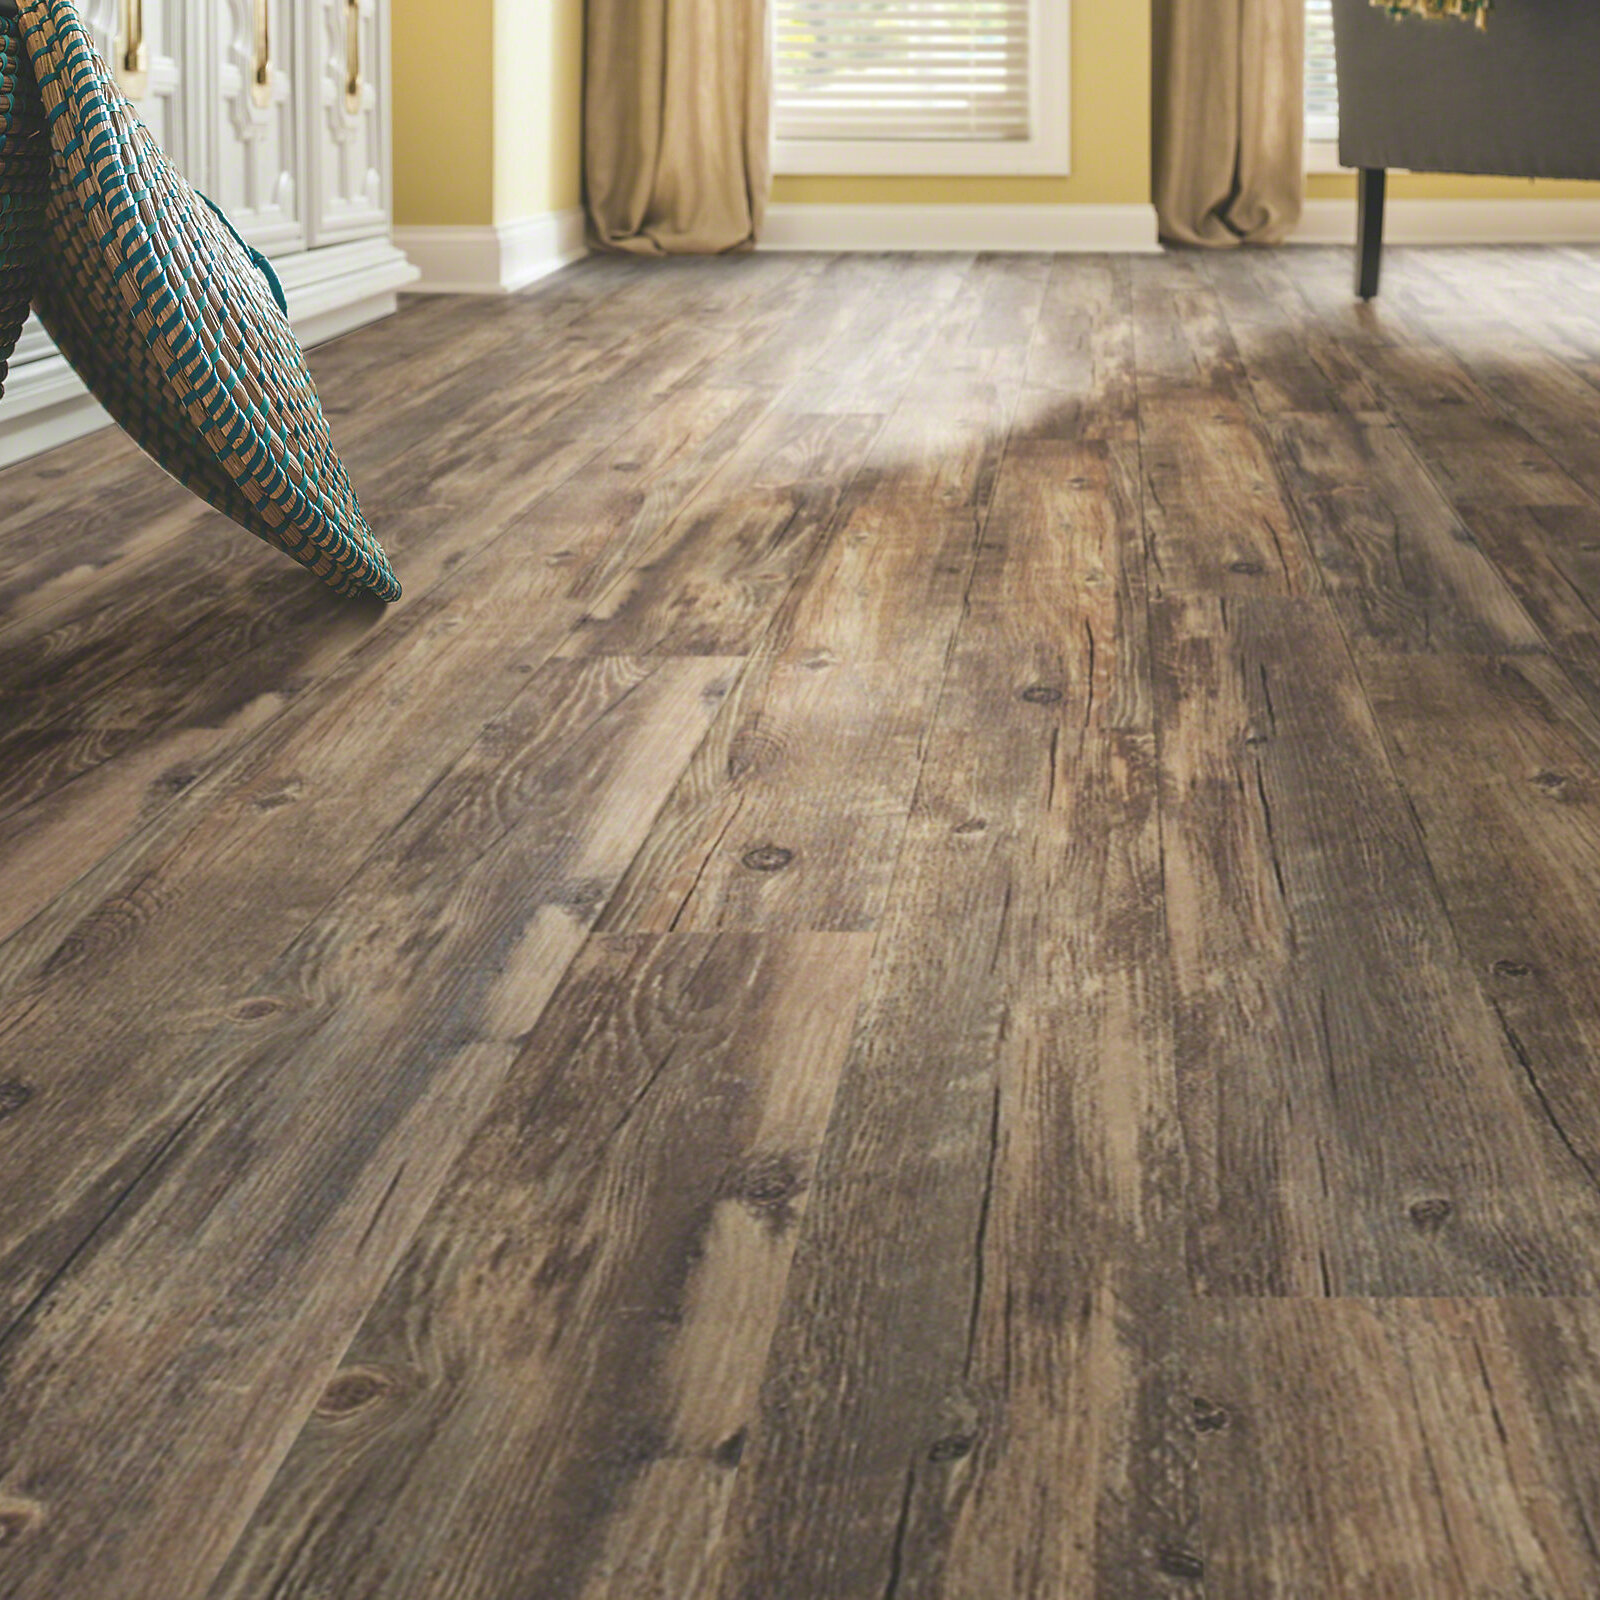 Shaw Floors World S Fair 12 6 Quot X 48 Quot X 2mm Luxury Vinyl